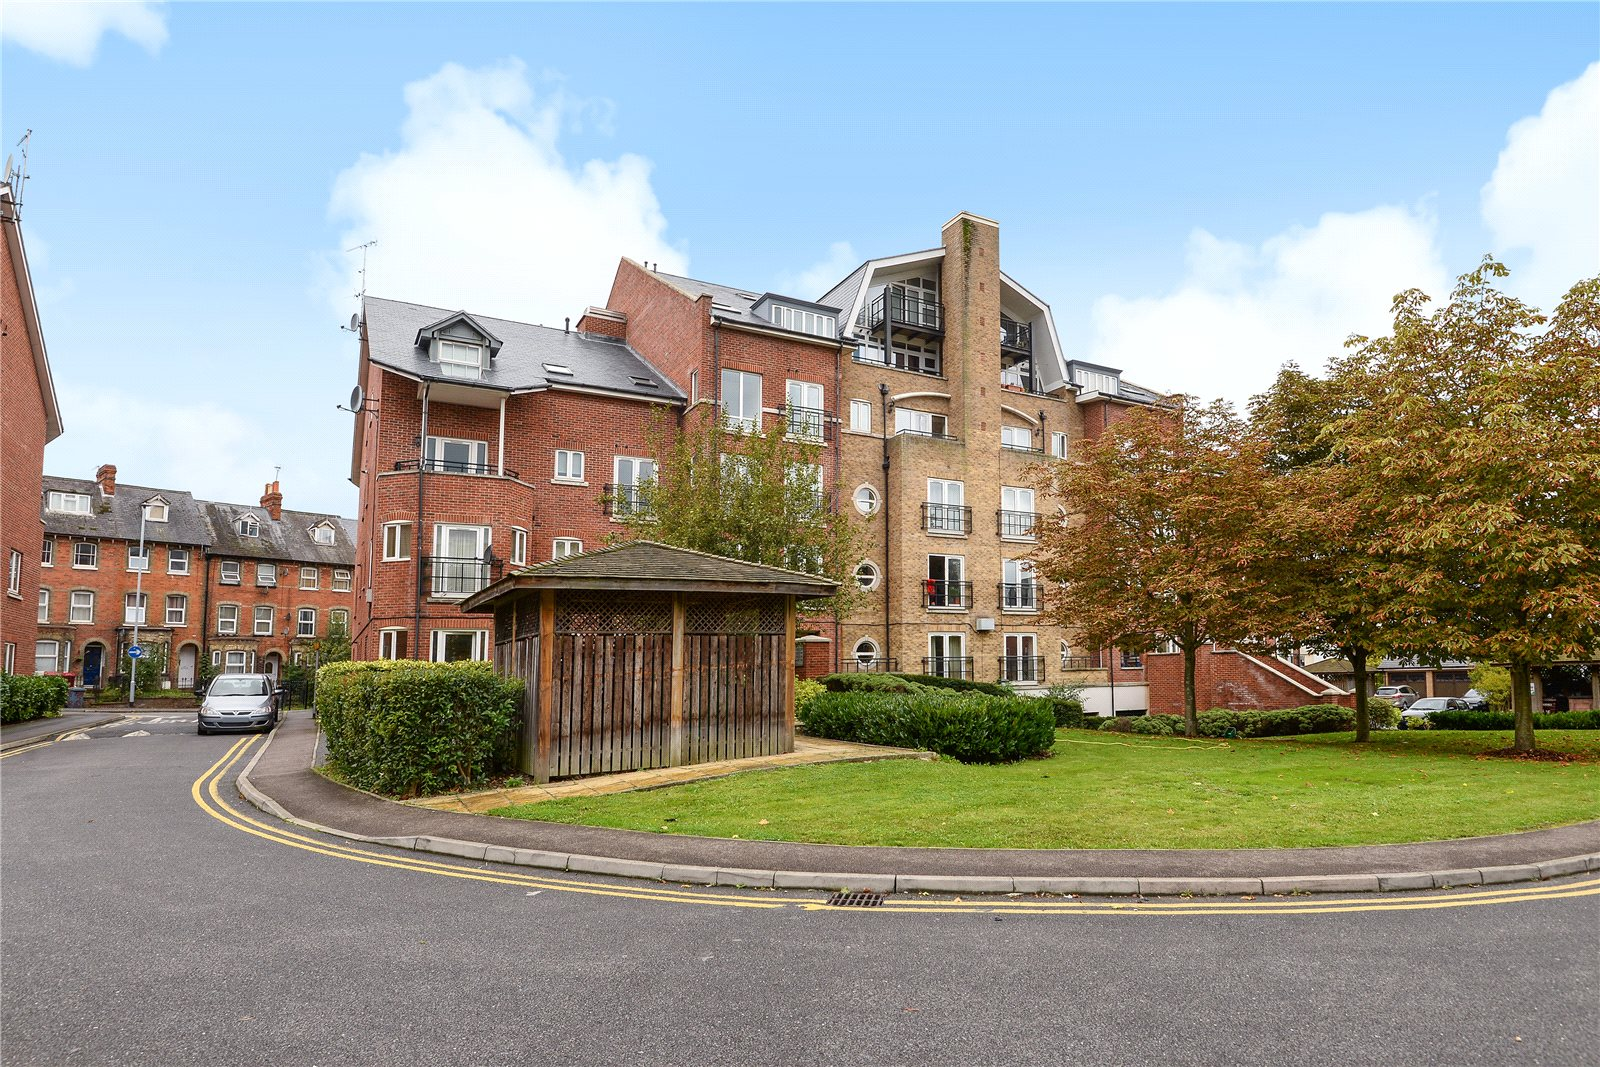 2 Bedrooms Apartment Flat for sale in Aveley House, Iliffe Close, Reading, Berkshire, RG1